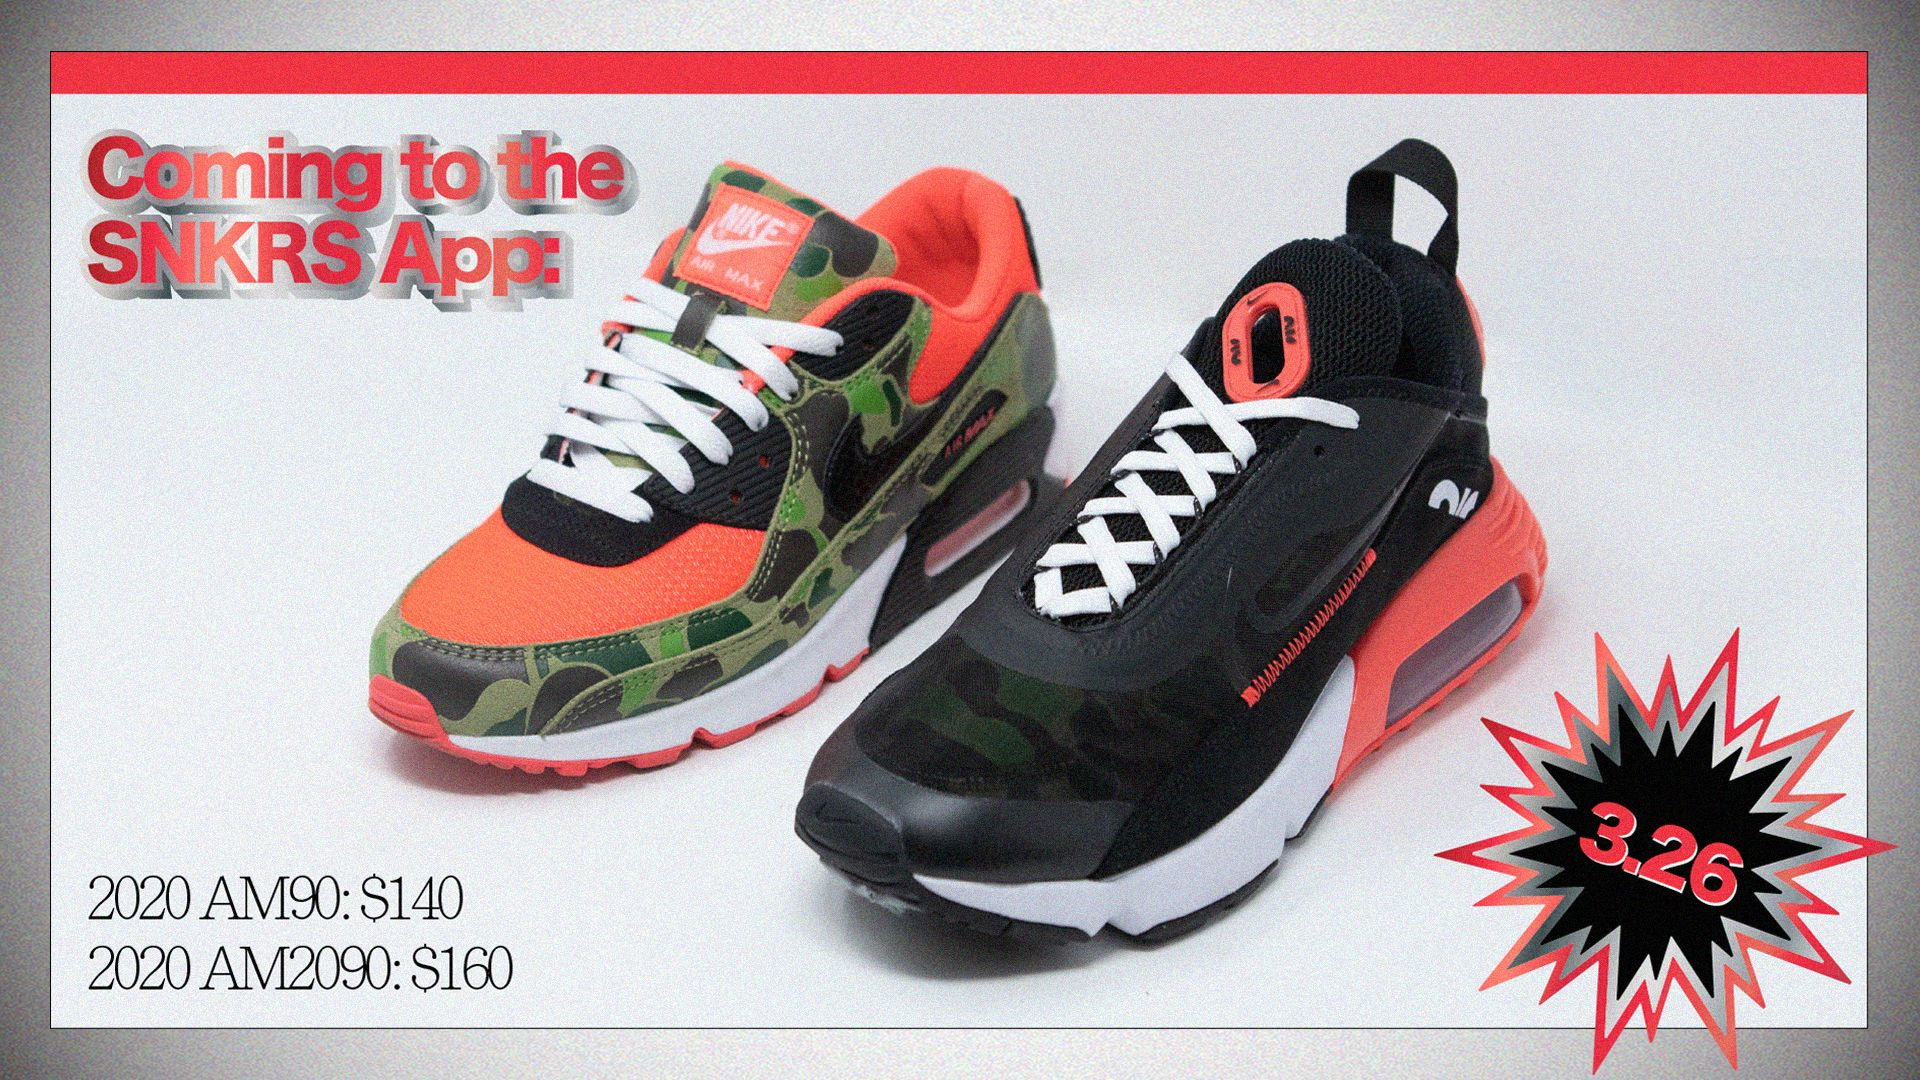 atmos-nike-air-max-2090-sp-infrared-release-20200326